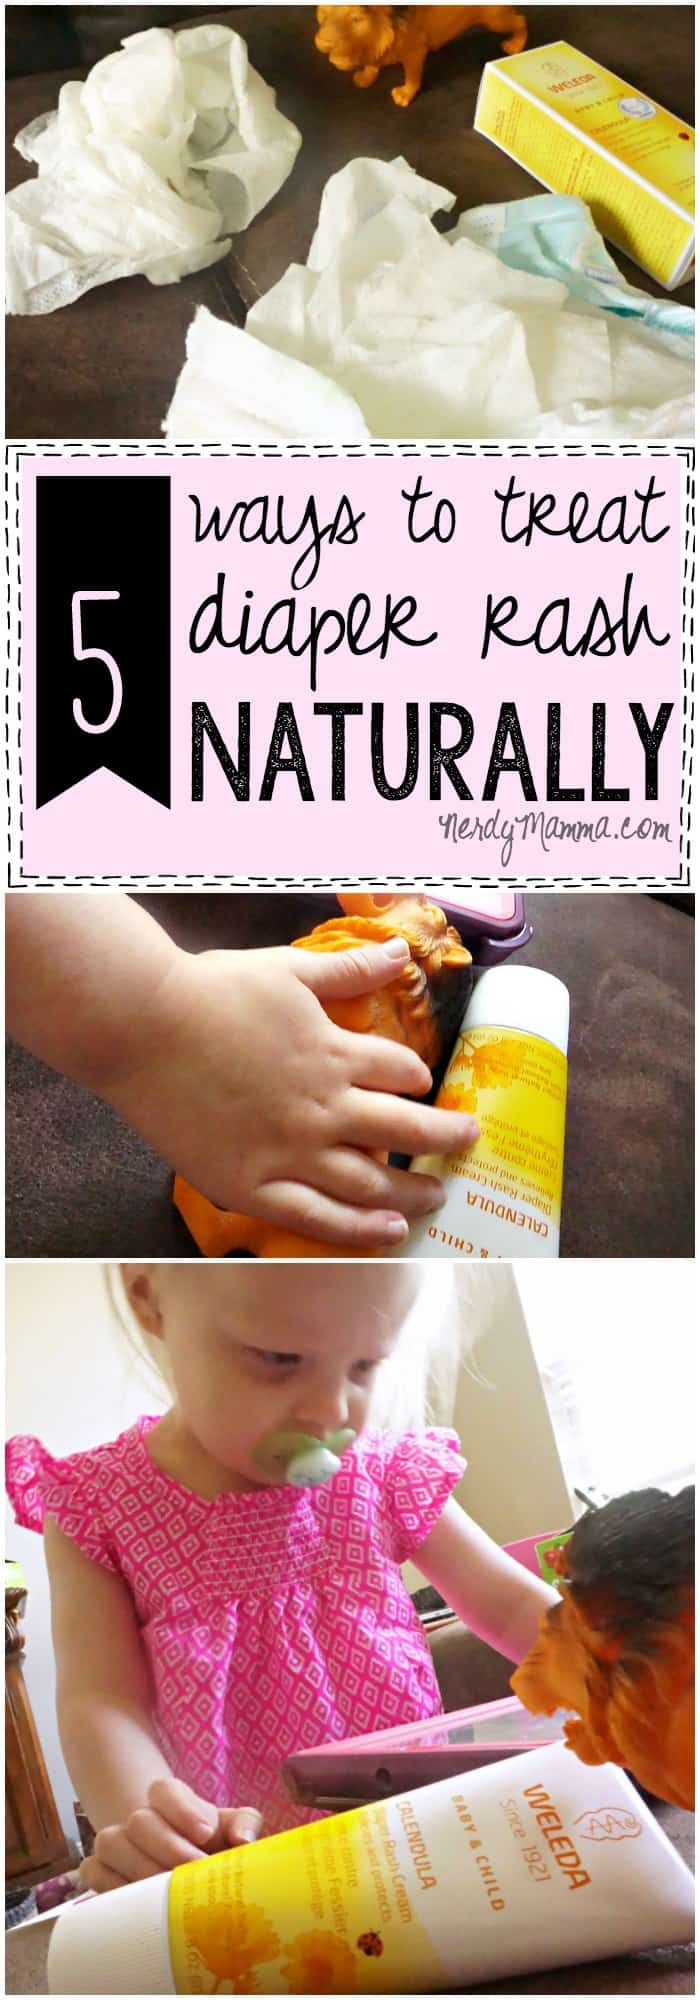 These 5 ways to treat diaper rash naturally are so easy. I never thought about it this way before!